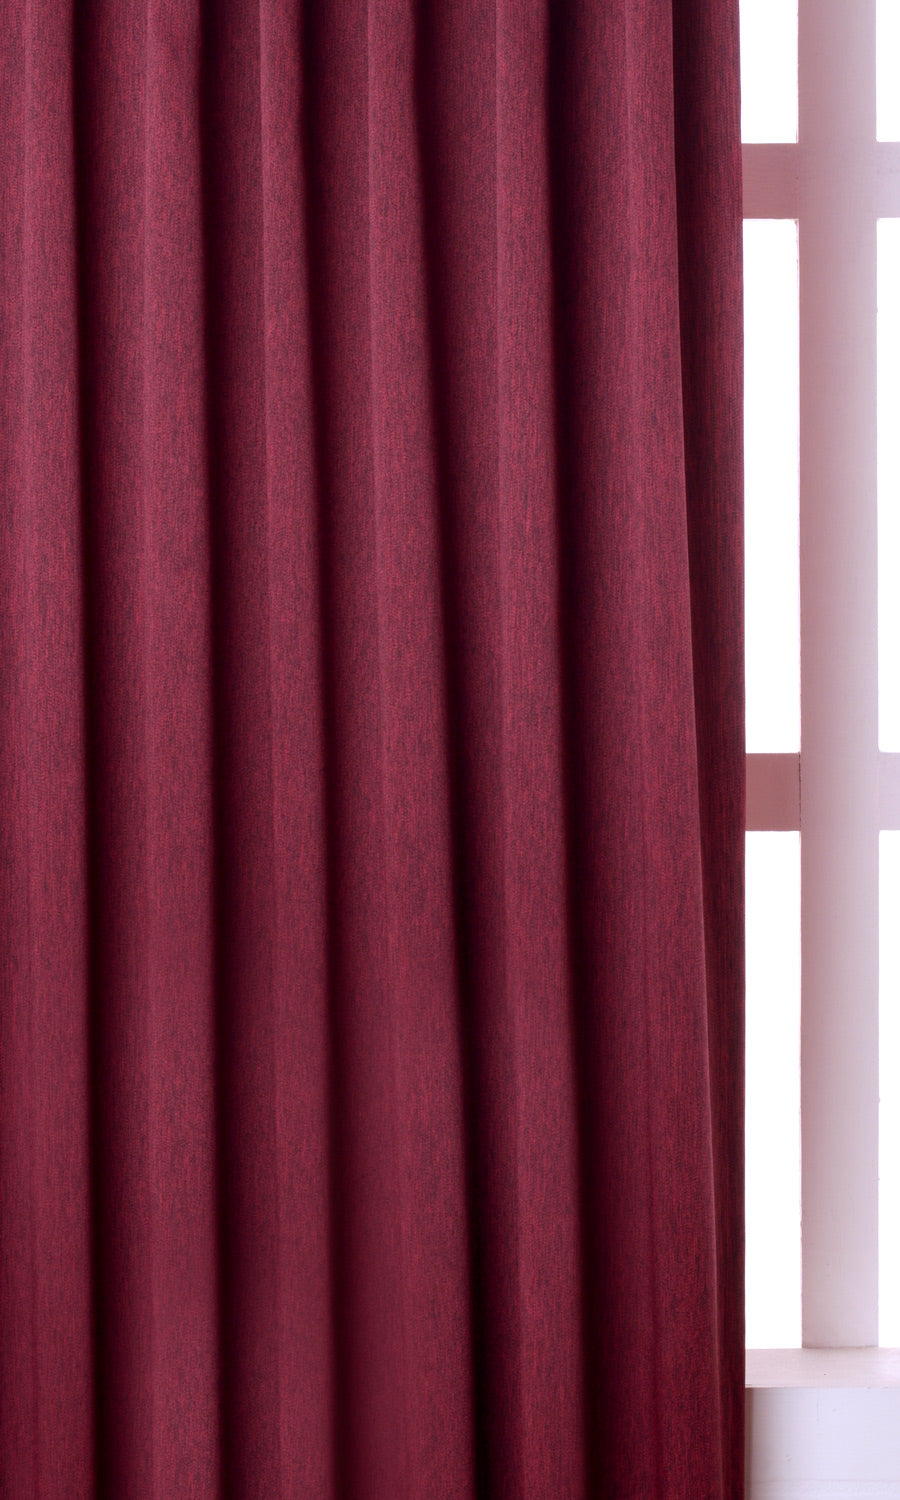 Extra Long I Buy Room Darkening Blackout Curtains Made To Measure Online Shop Now Spiffy Spools